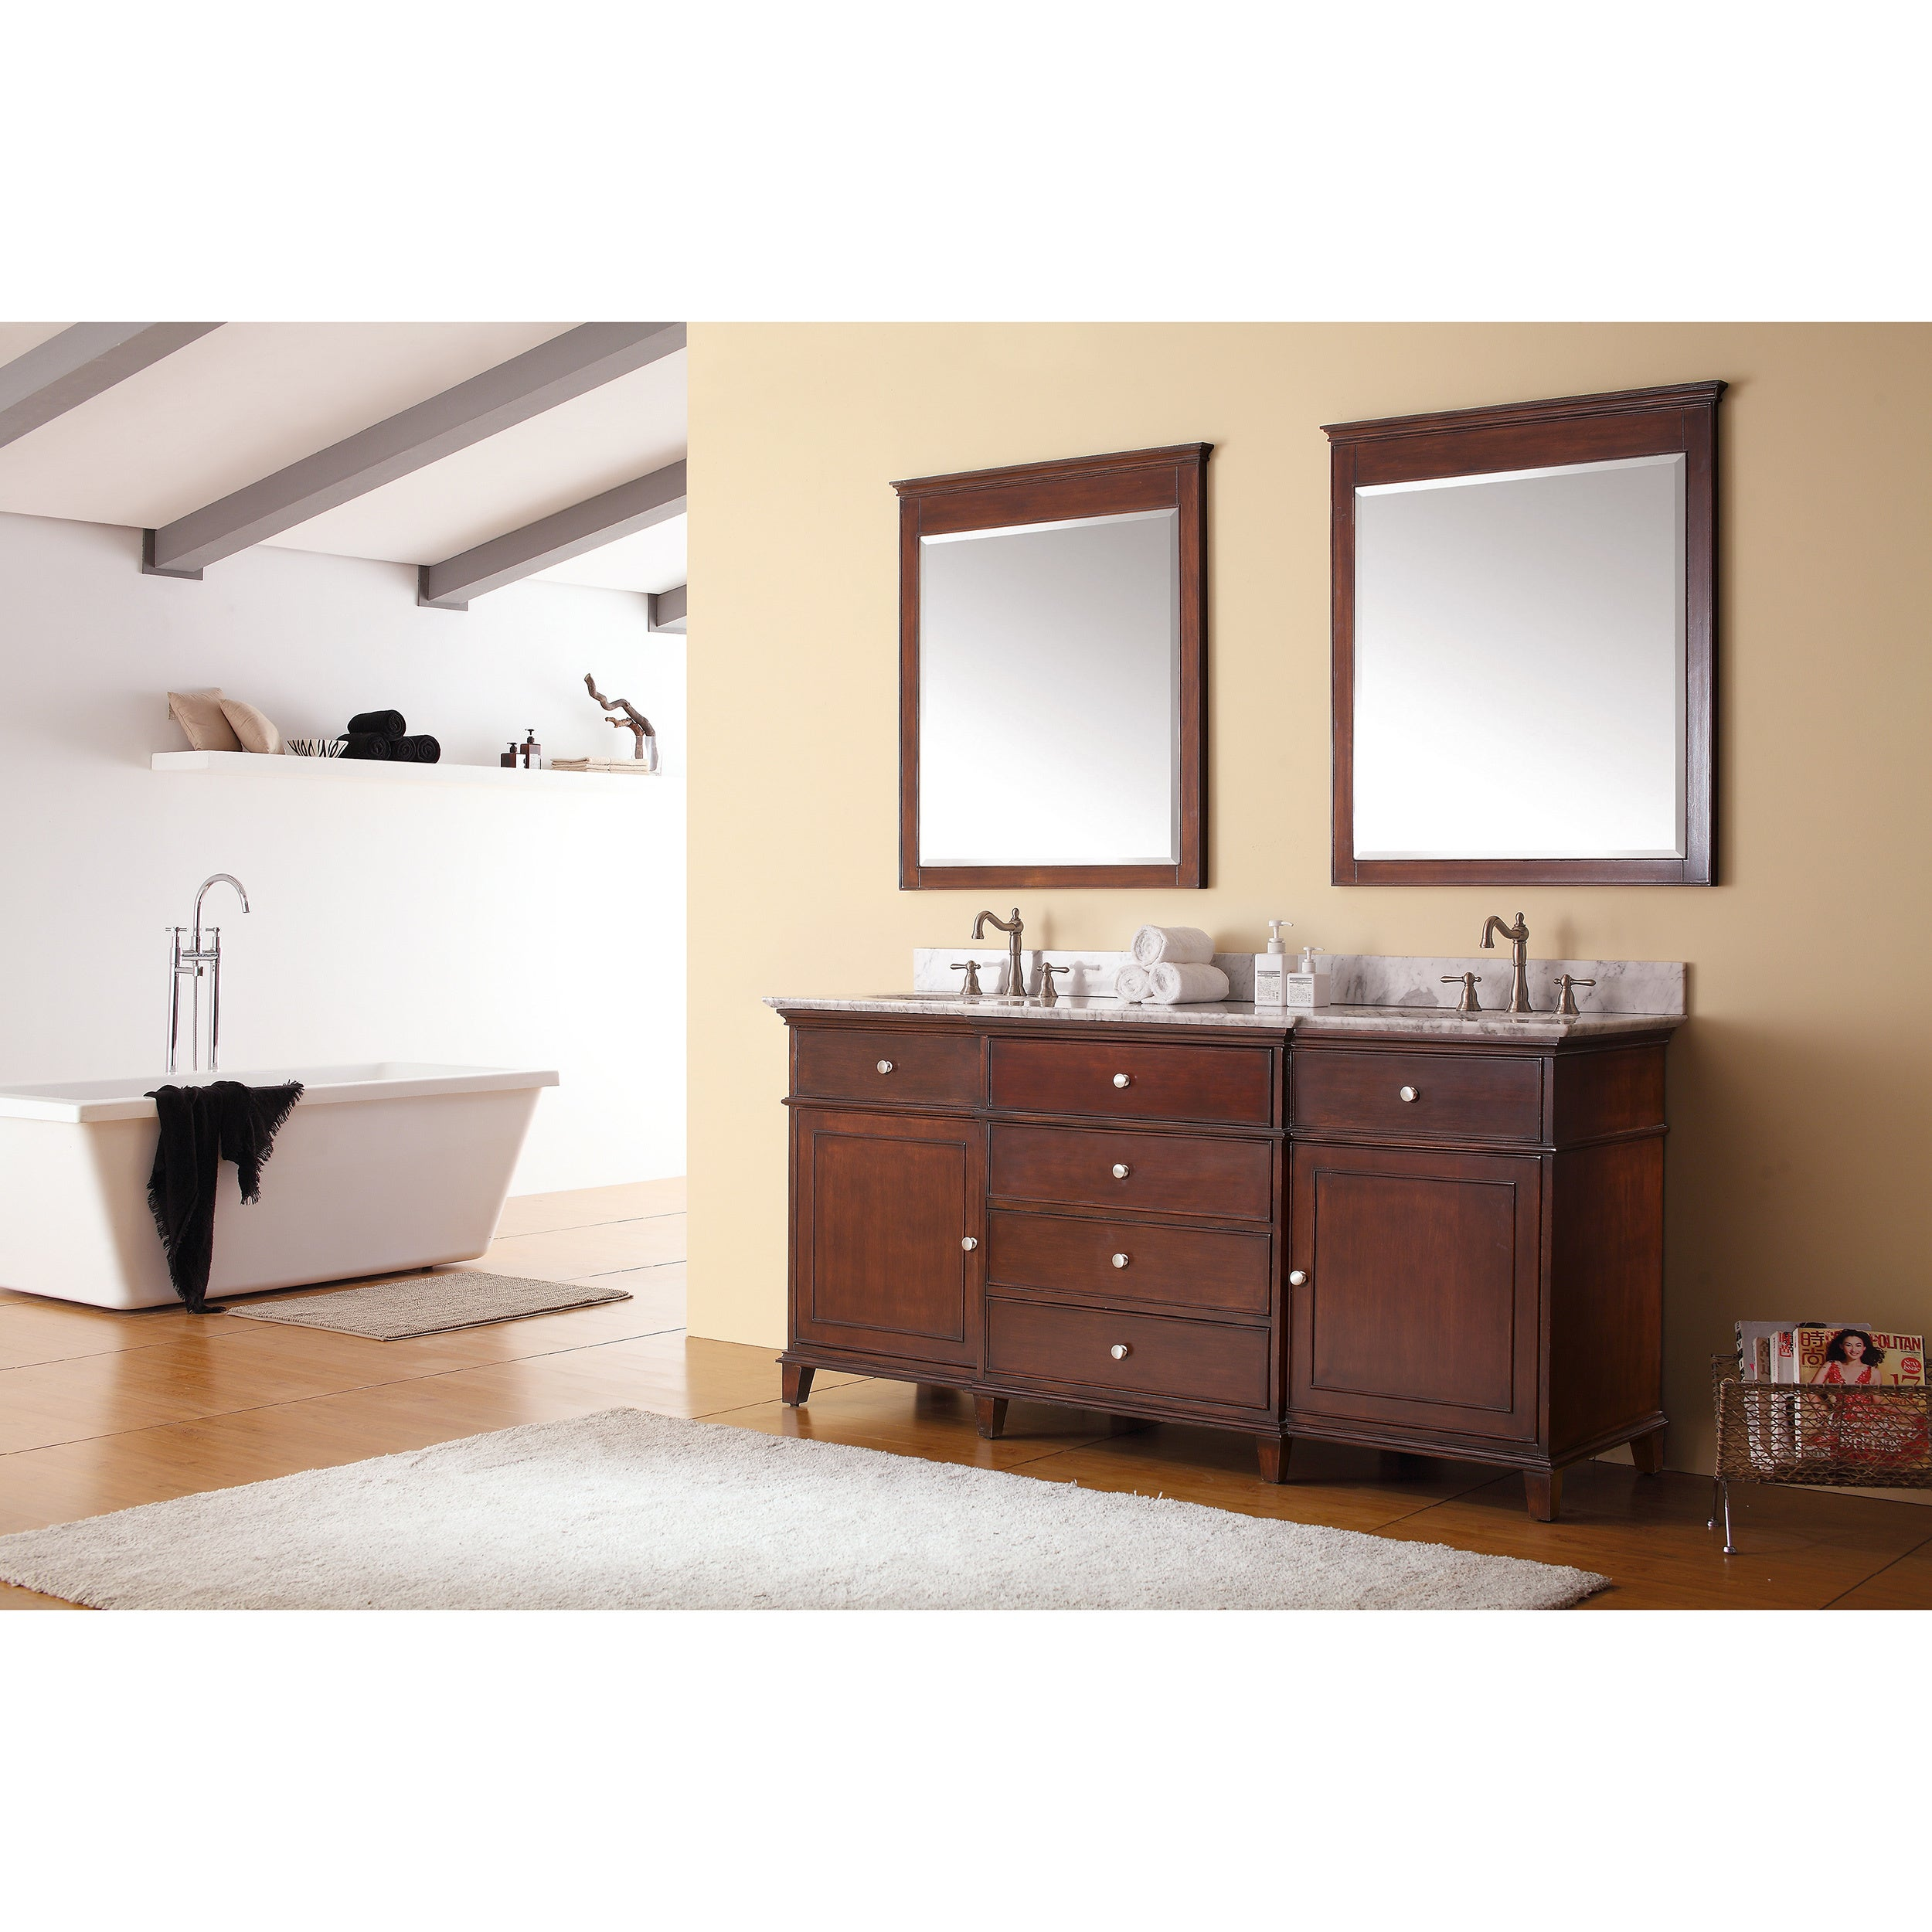 fresh x inch vanity bathroom gallery dimensions with dual of sink